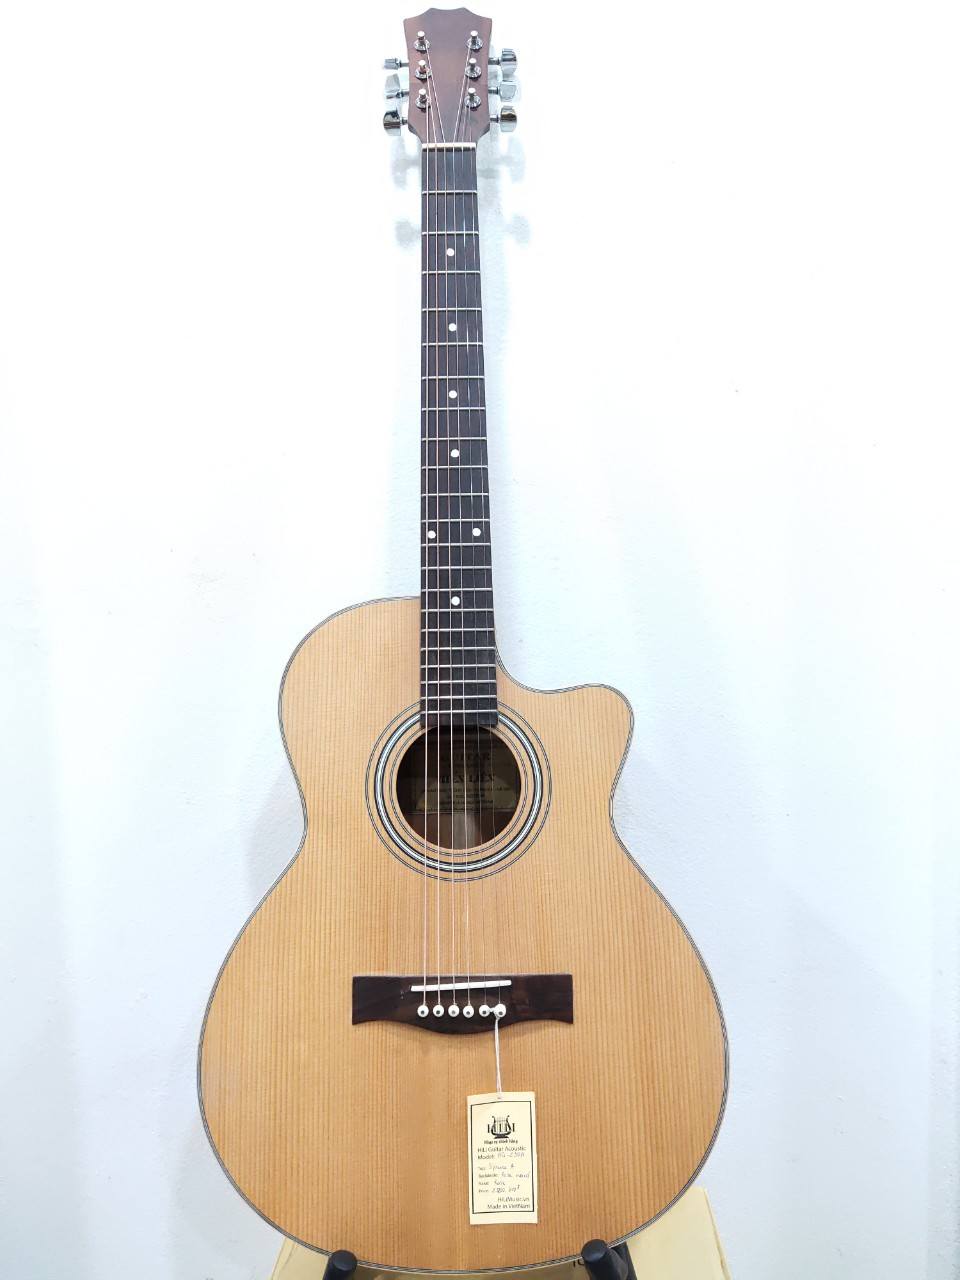 Đàn Guitar Acoustic AG-230A made in VietNam